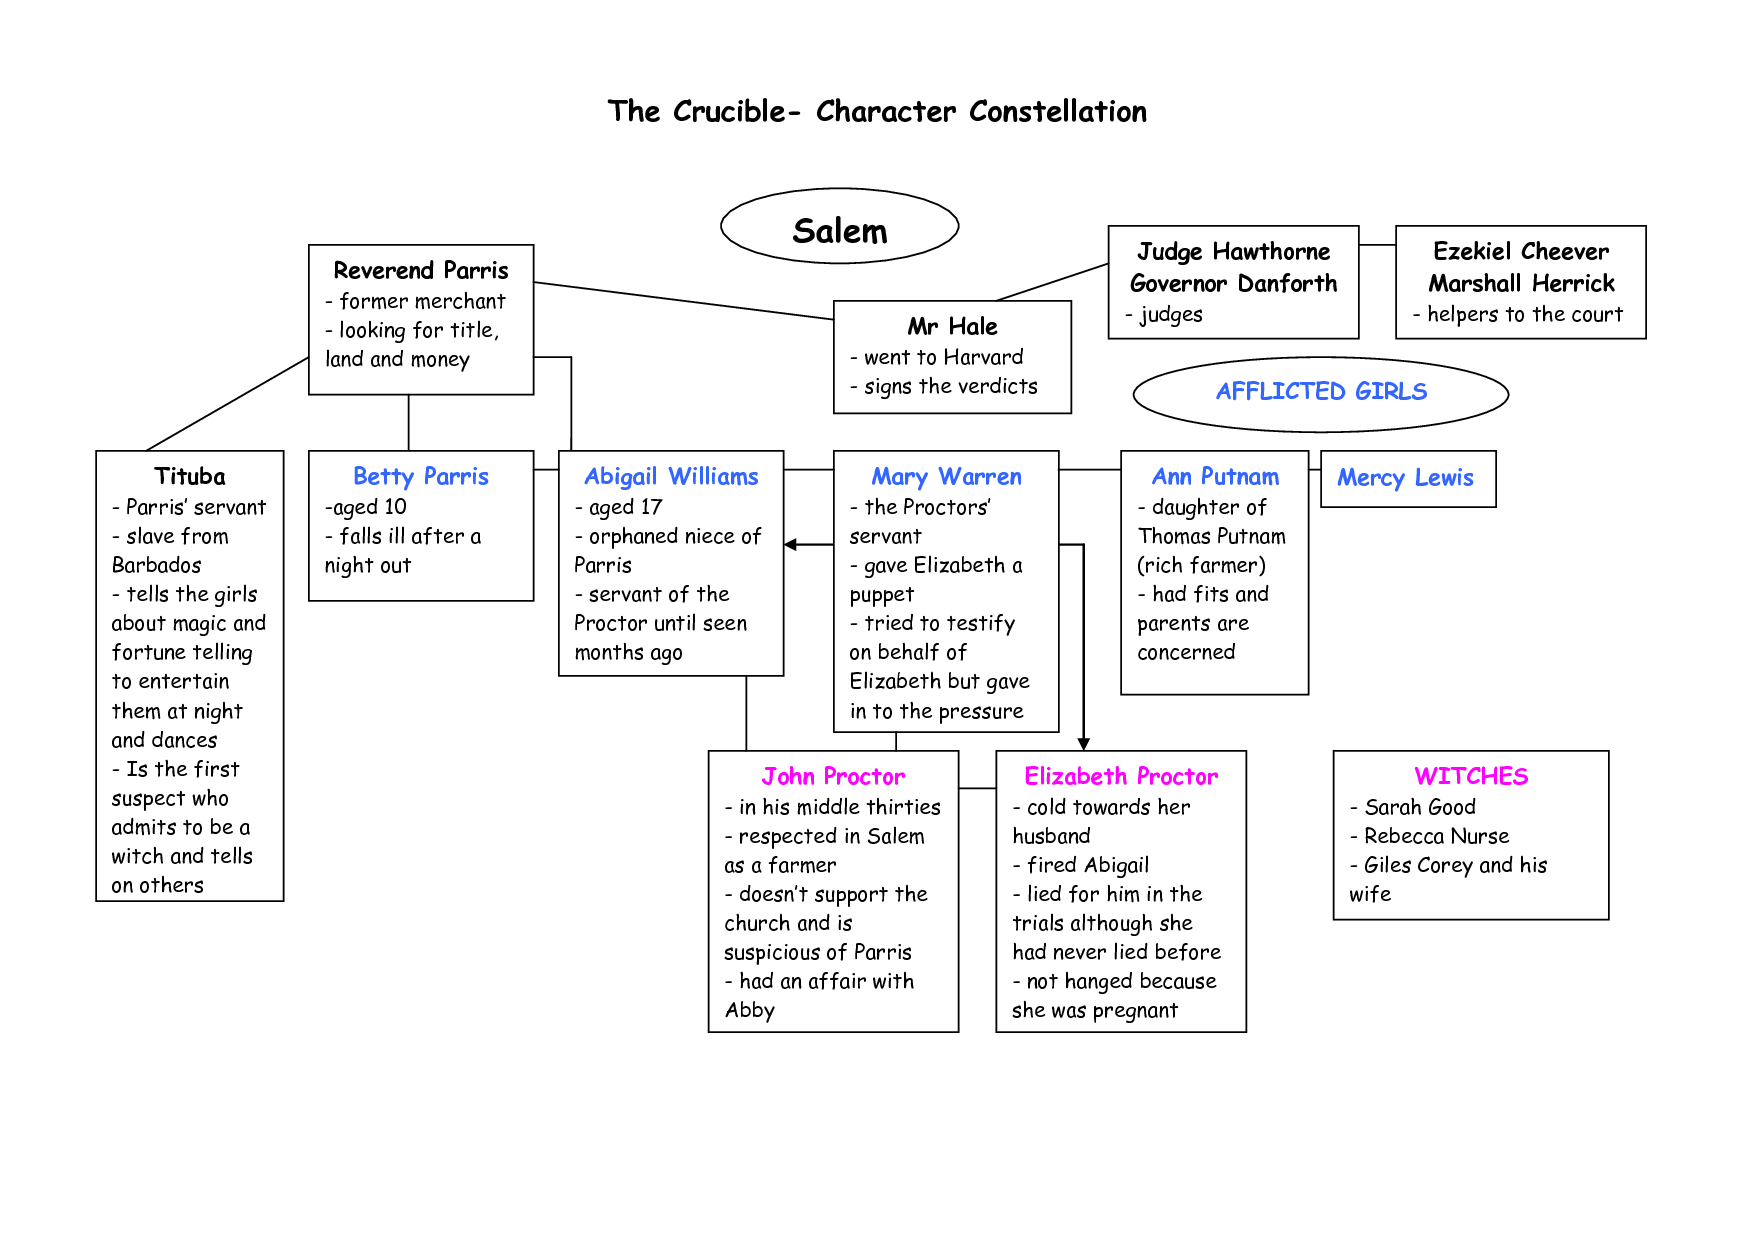 Characterization of the crucible